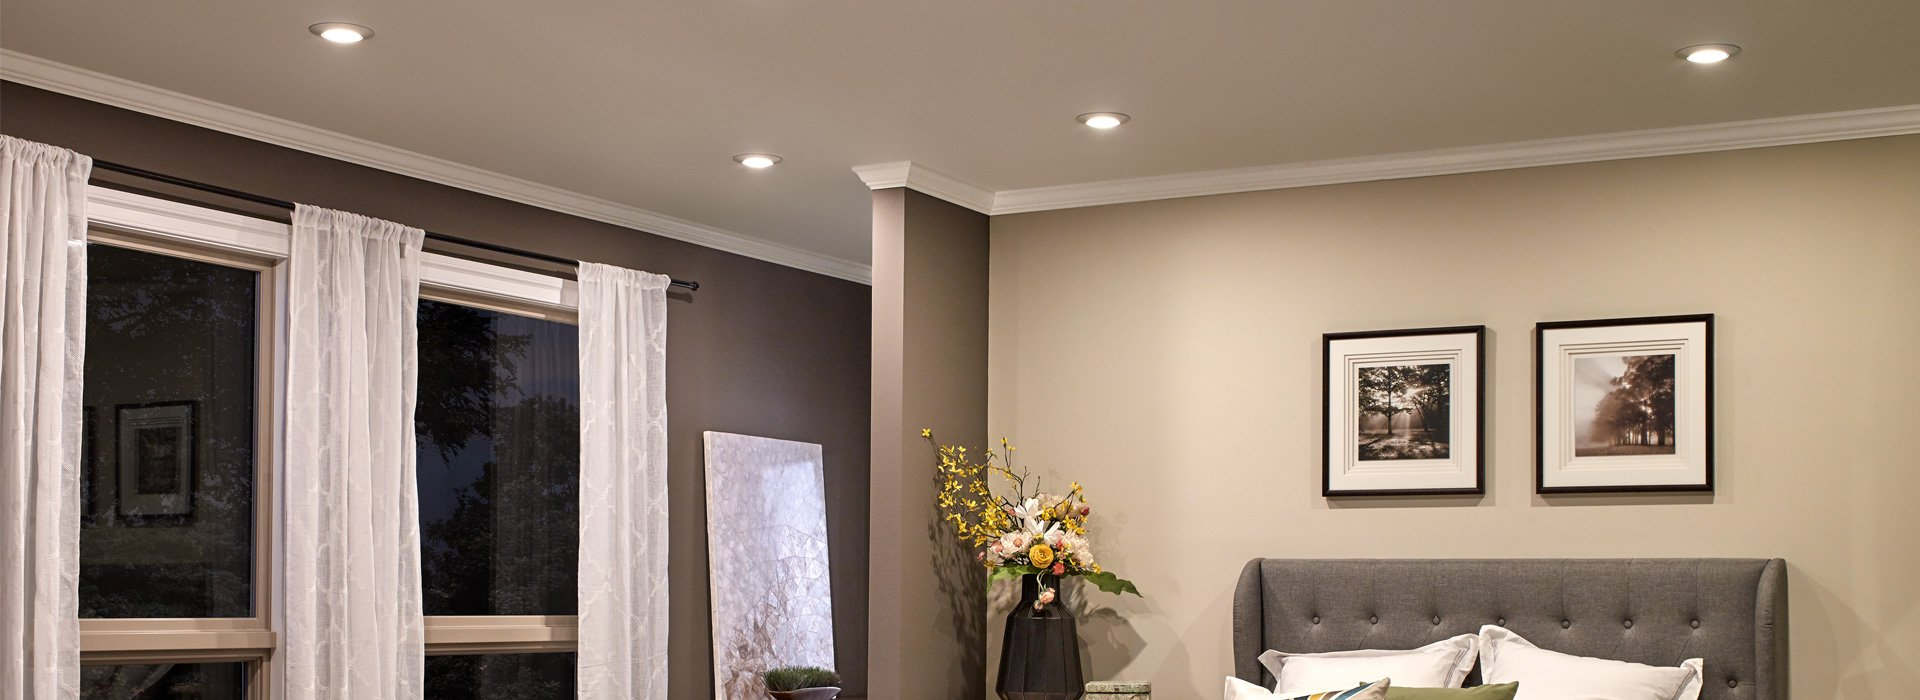 Recessed & Downlights